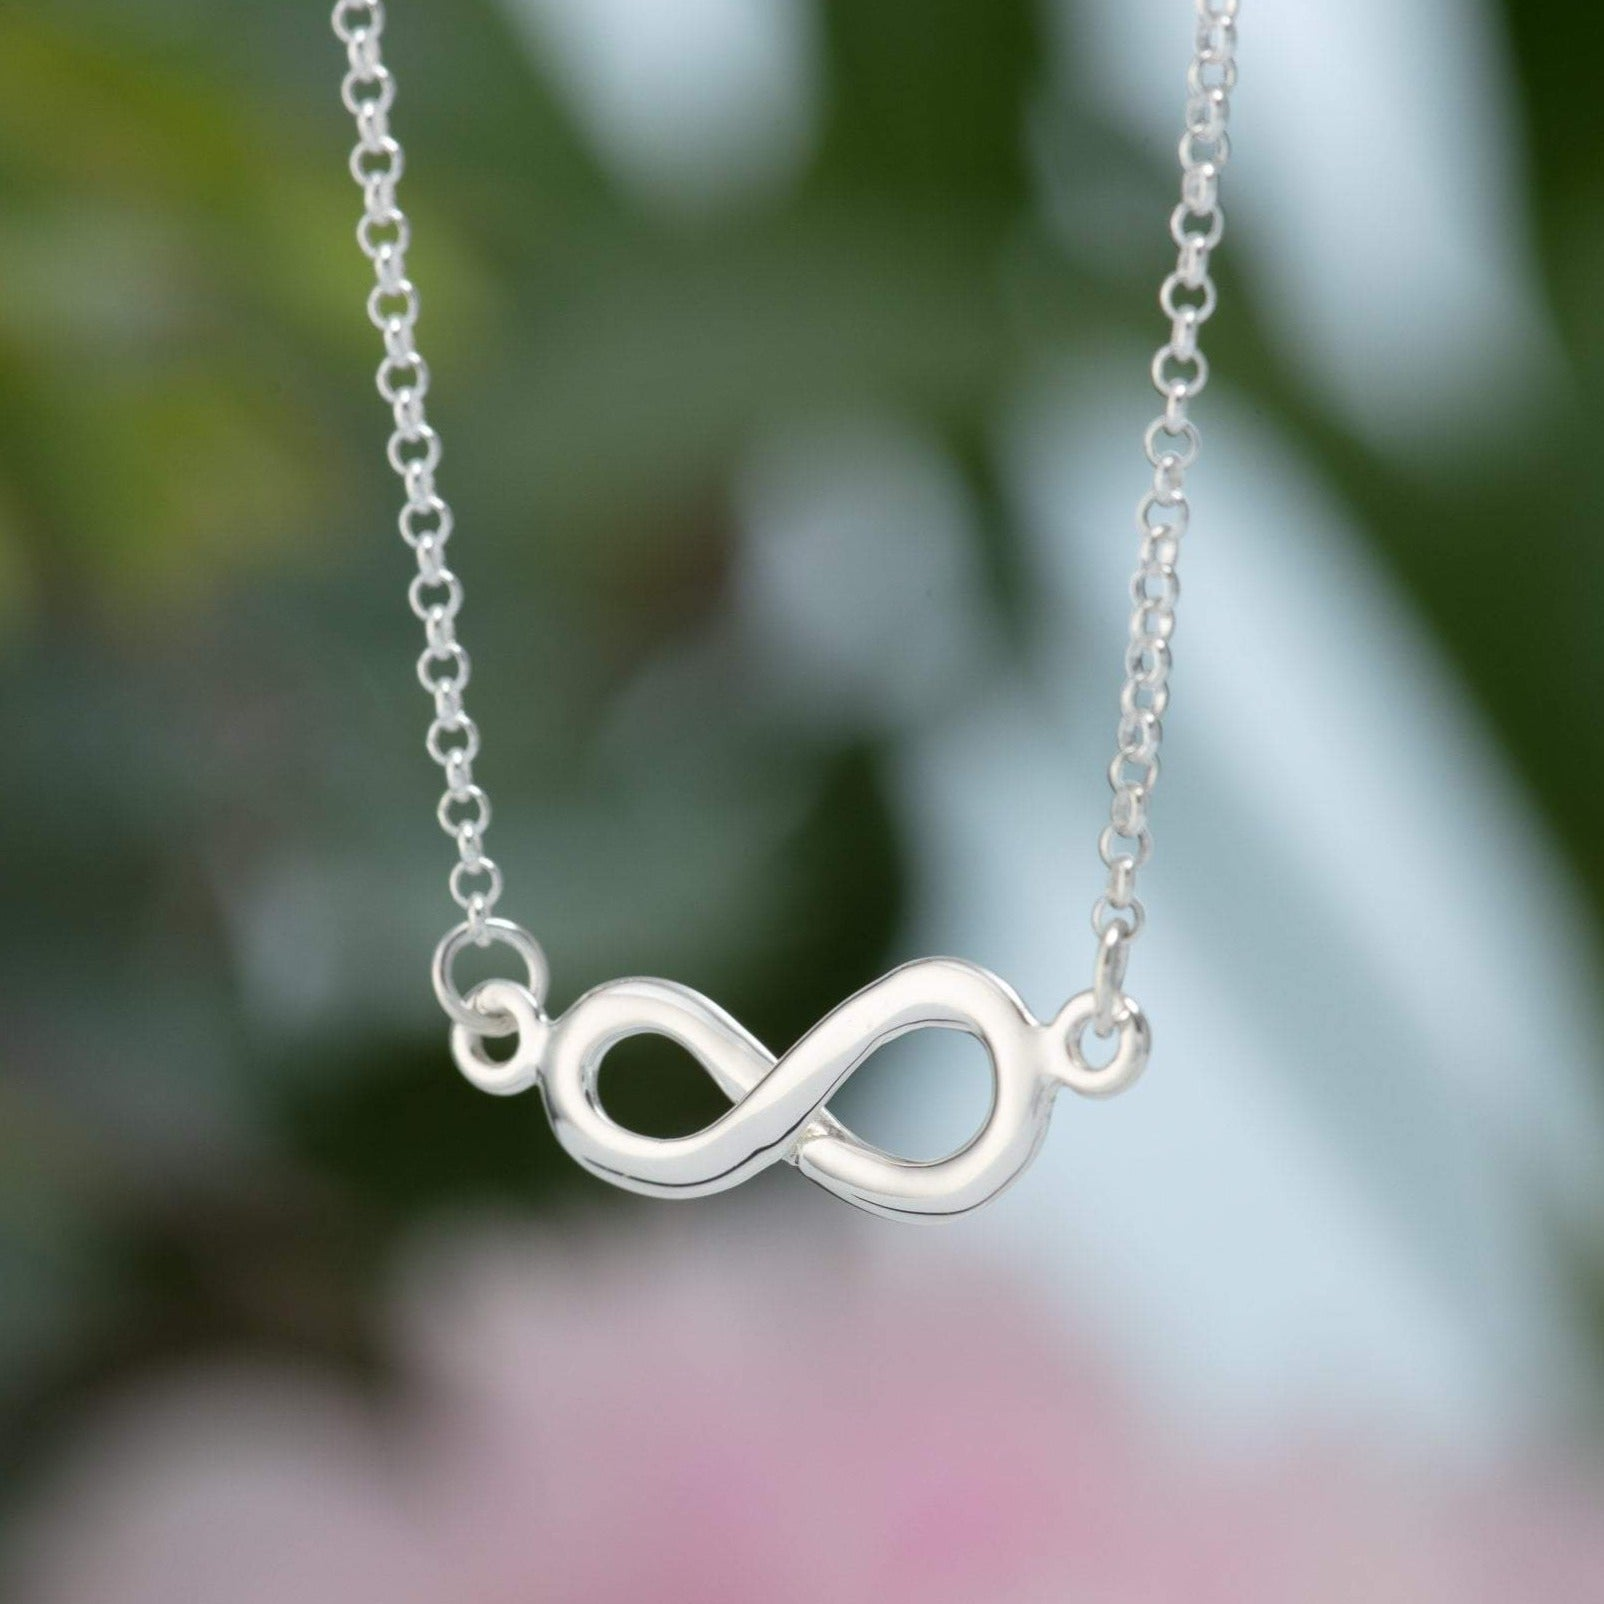 Personalised Silver Infinity Necklace - Lily Charmed